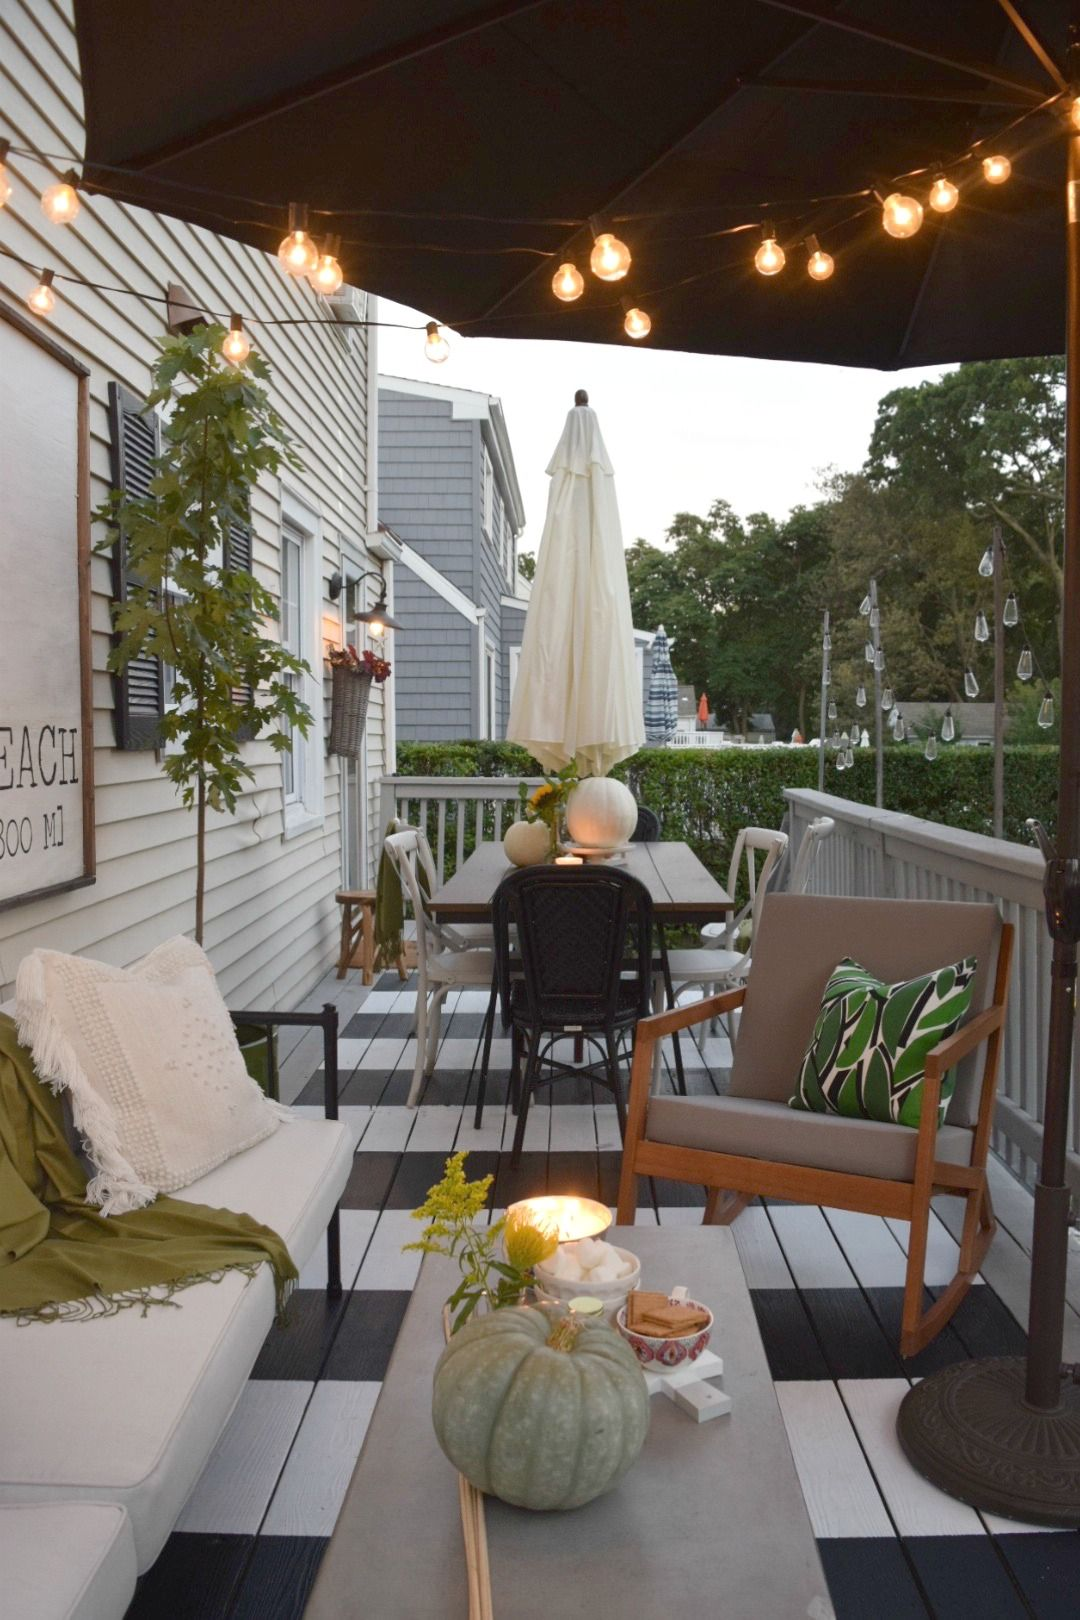 Top 5 Most Bang For Your Buck Ideas To Do In Your Home   Nesting With  Grace. Small Backyard DecksSmall BackyardsOutdoor PaintOutdoor ...